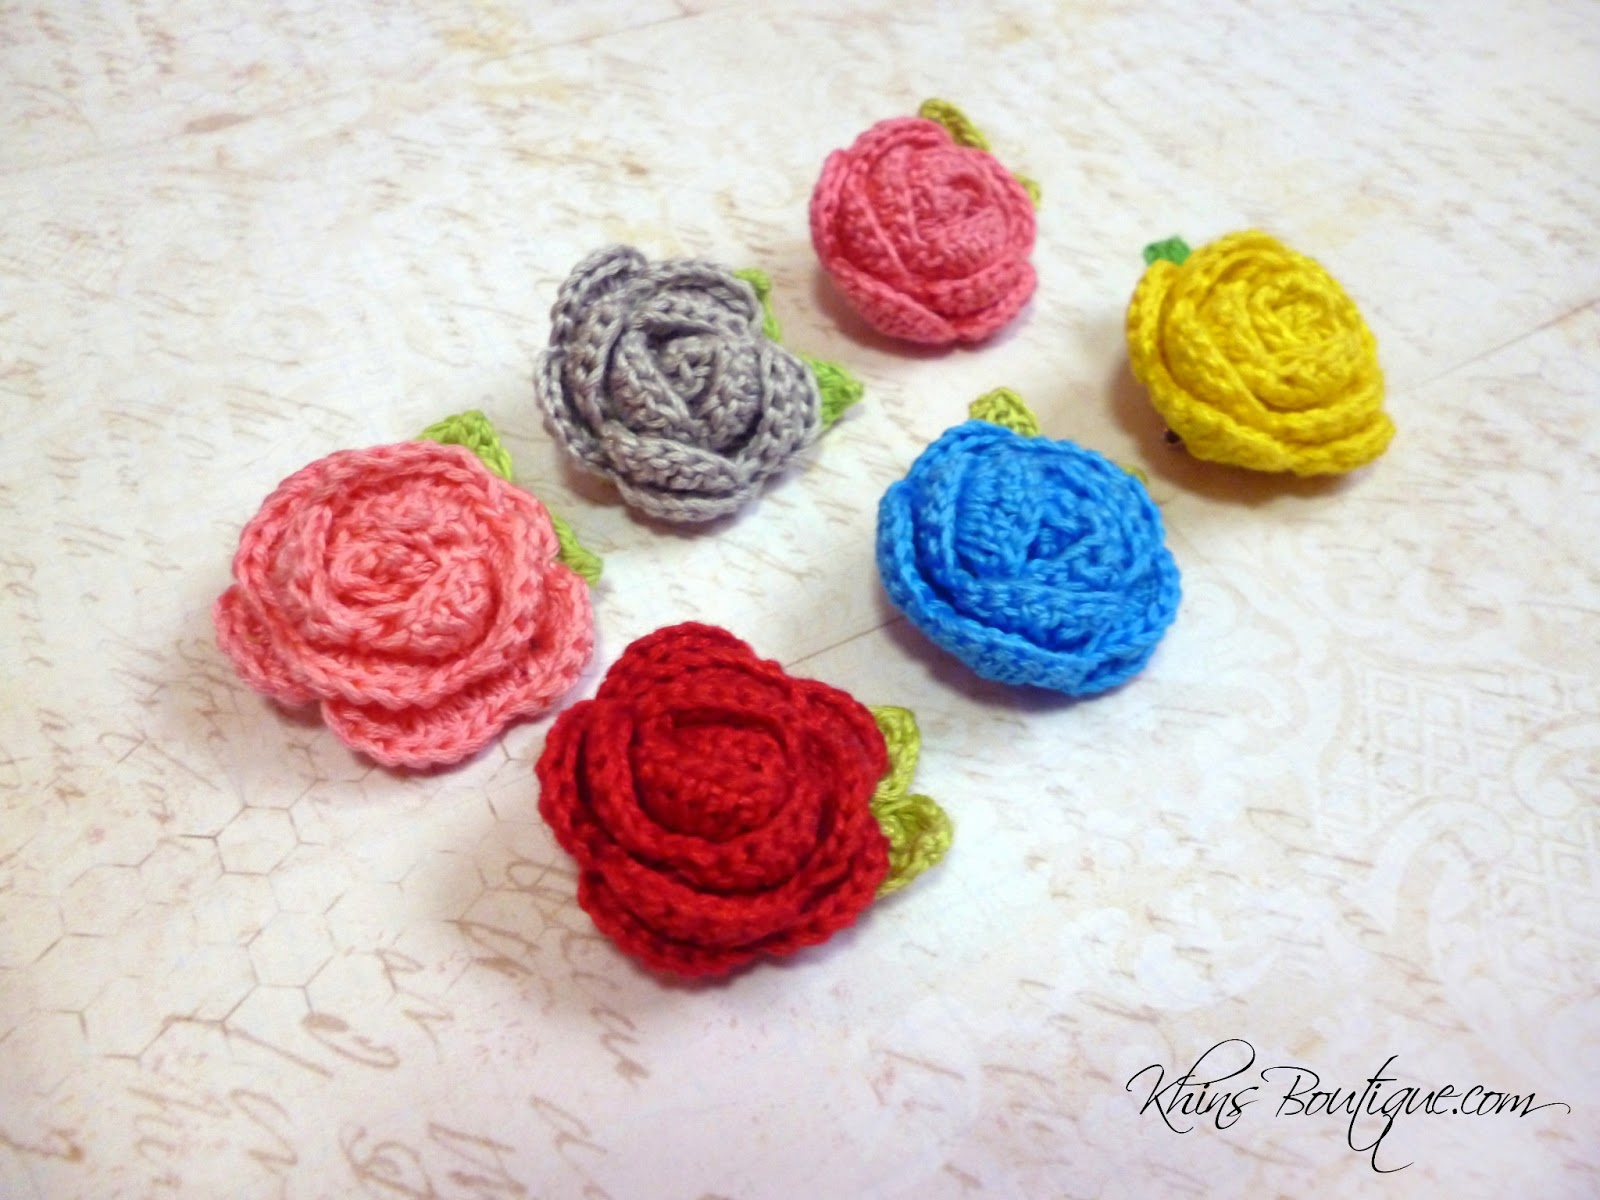 KhinsBoutique: Tiny Crochet Rose Brooches